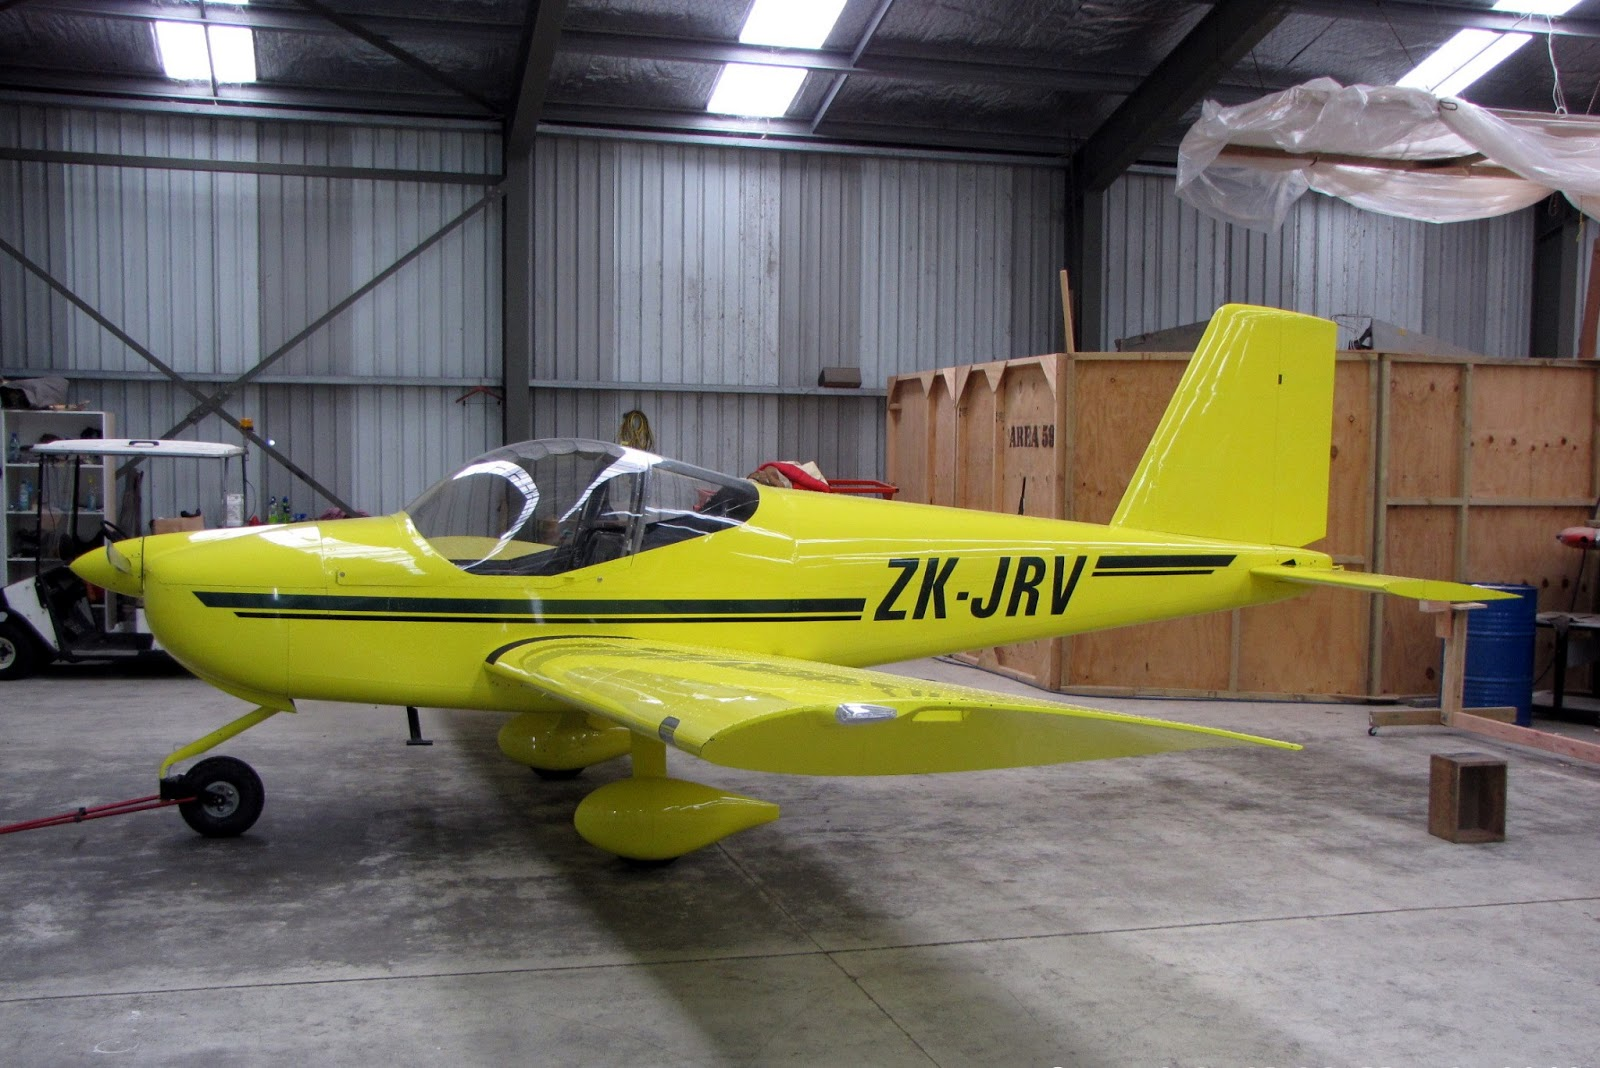 8049bac6d0 ZK-JRV (c n 120316) was registered to JM Coles of Auckland on 11 12 12. It  is scheduled to be test flown next week